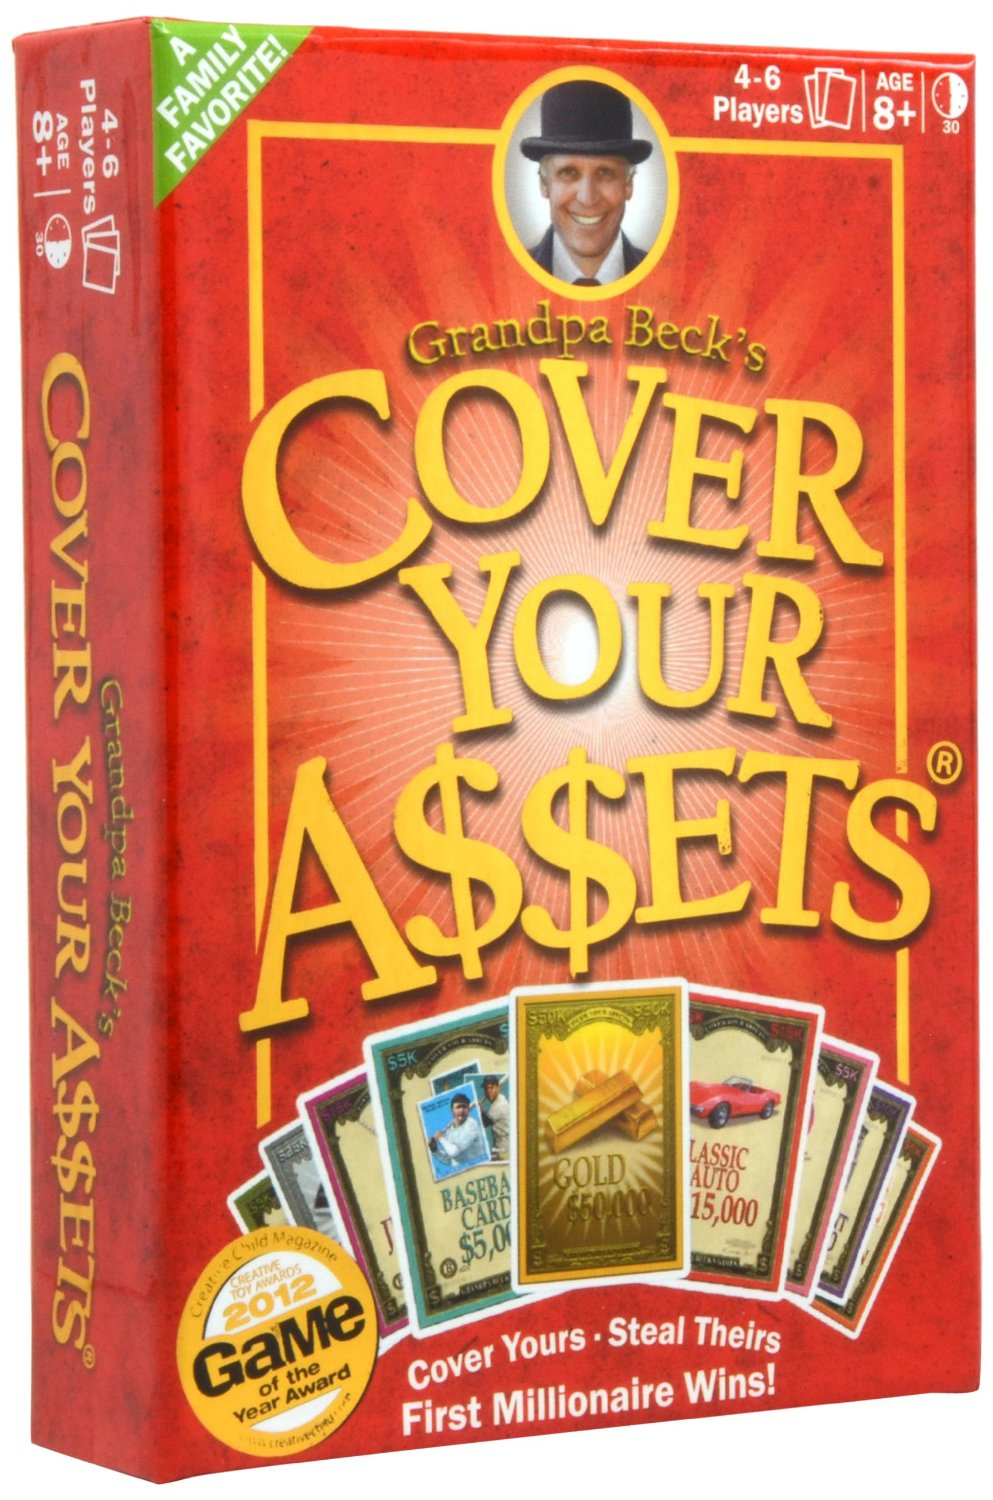 Cover your Assets is a fun family card game that the entire family will enjoy.